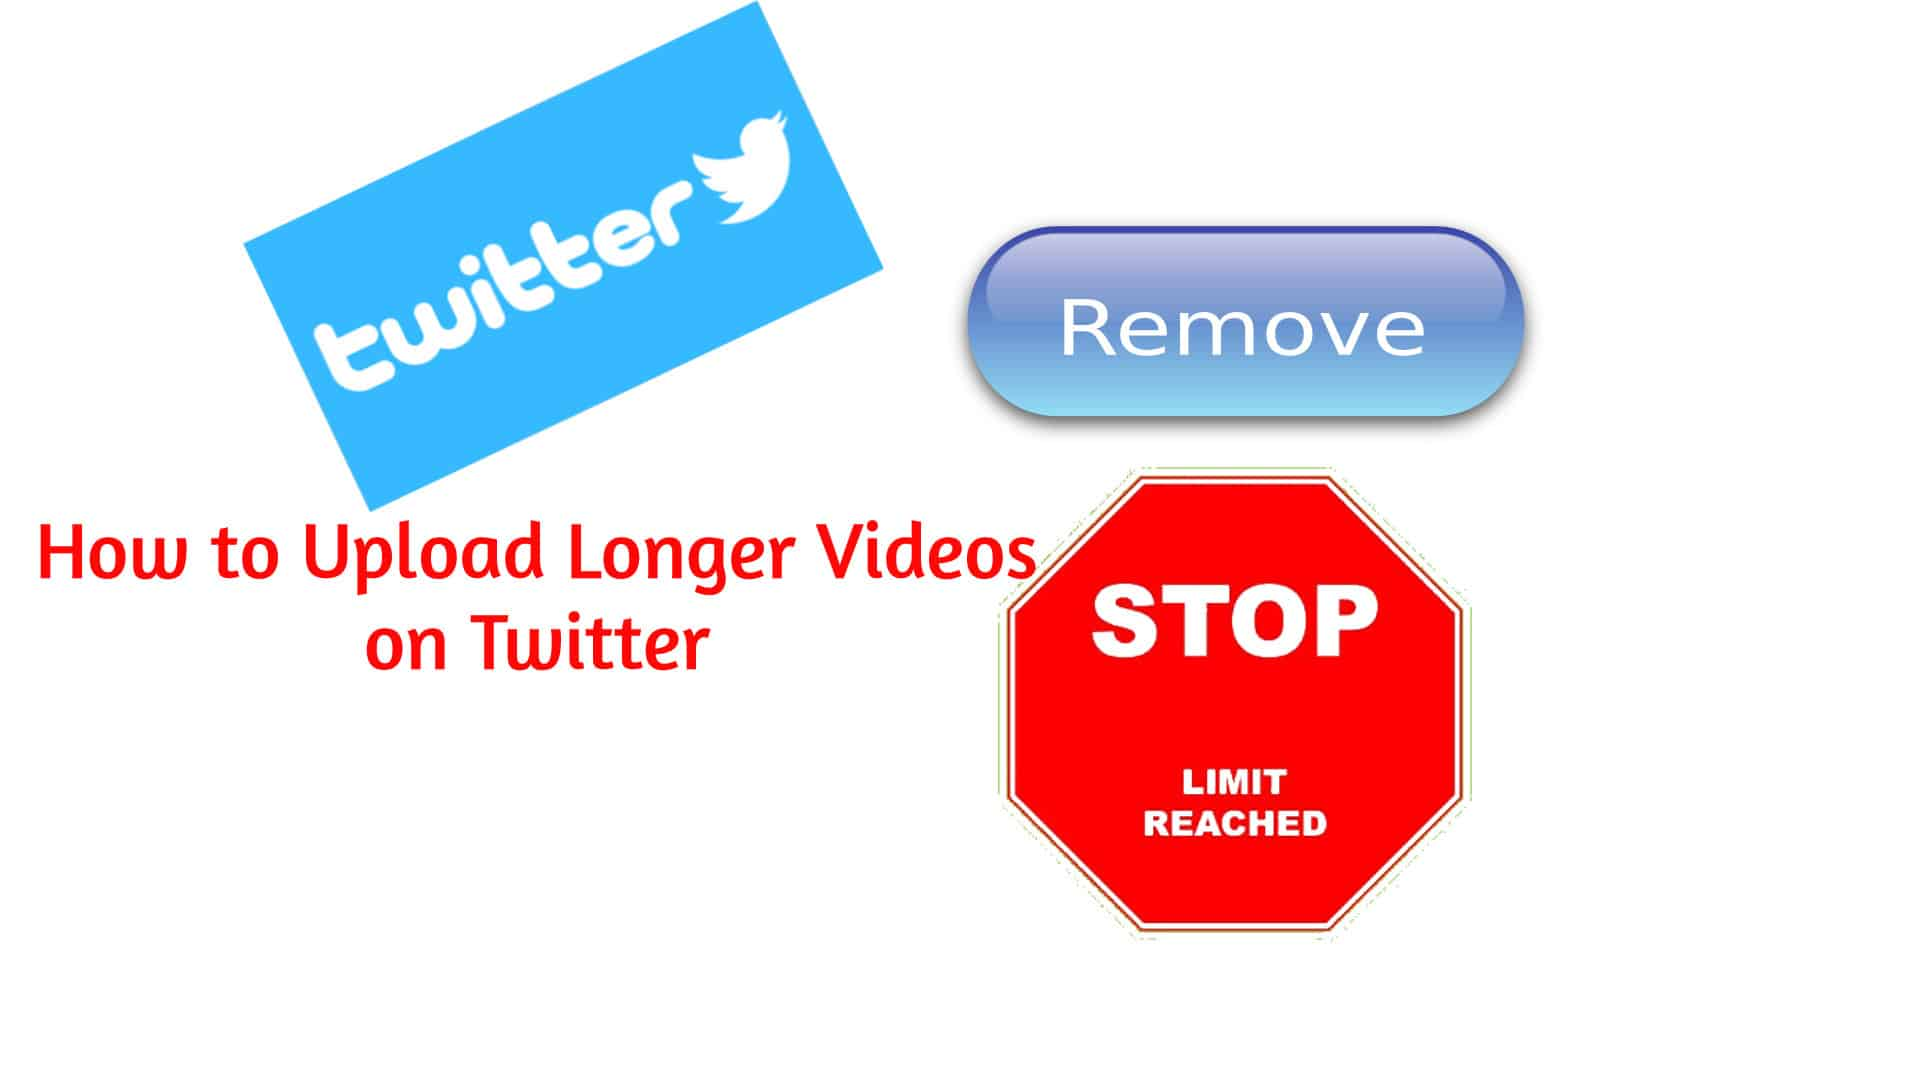 How to Upload Longer Videos On Twitter